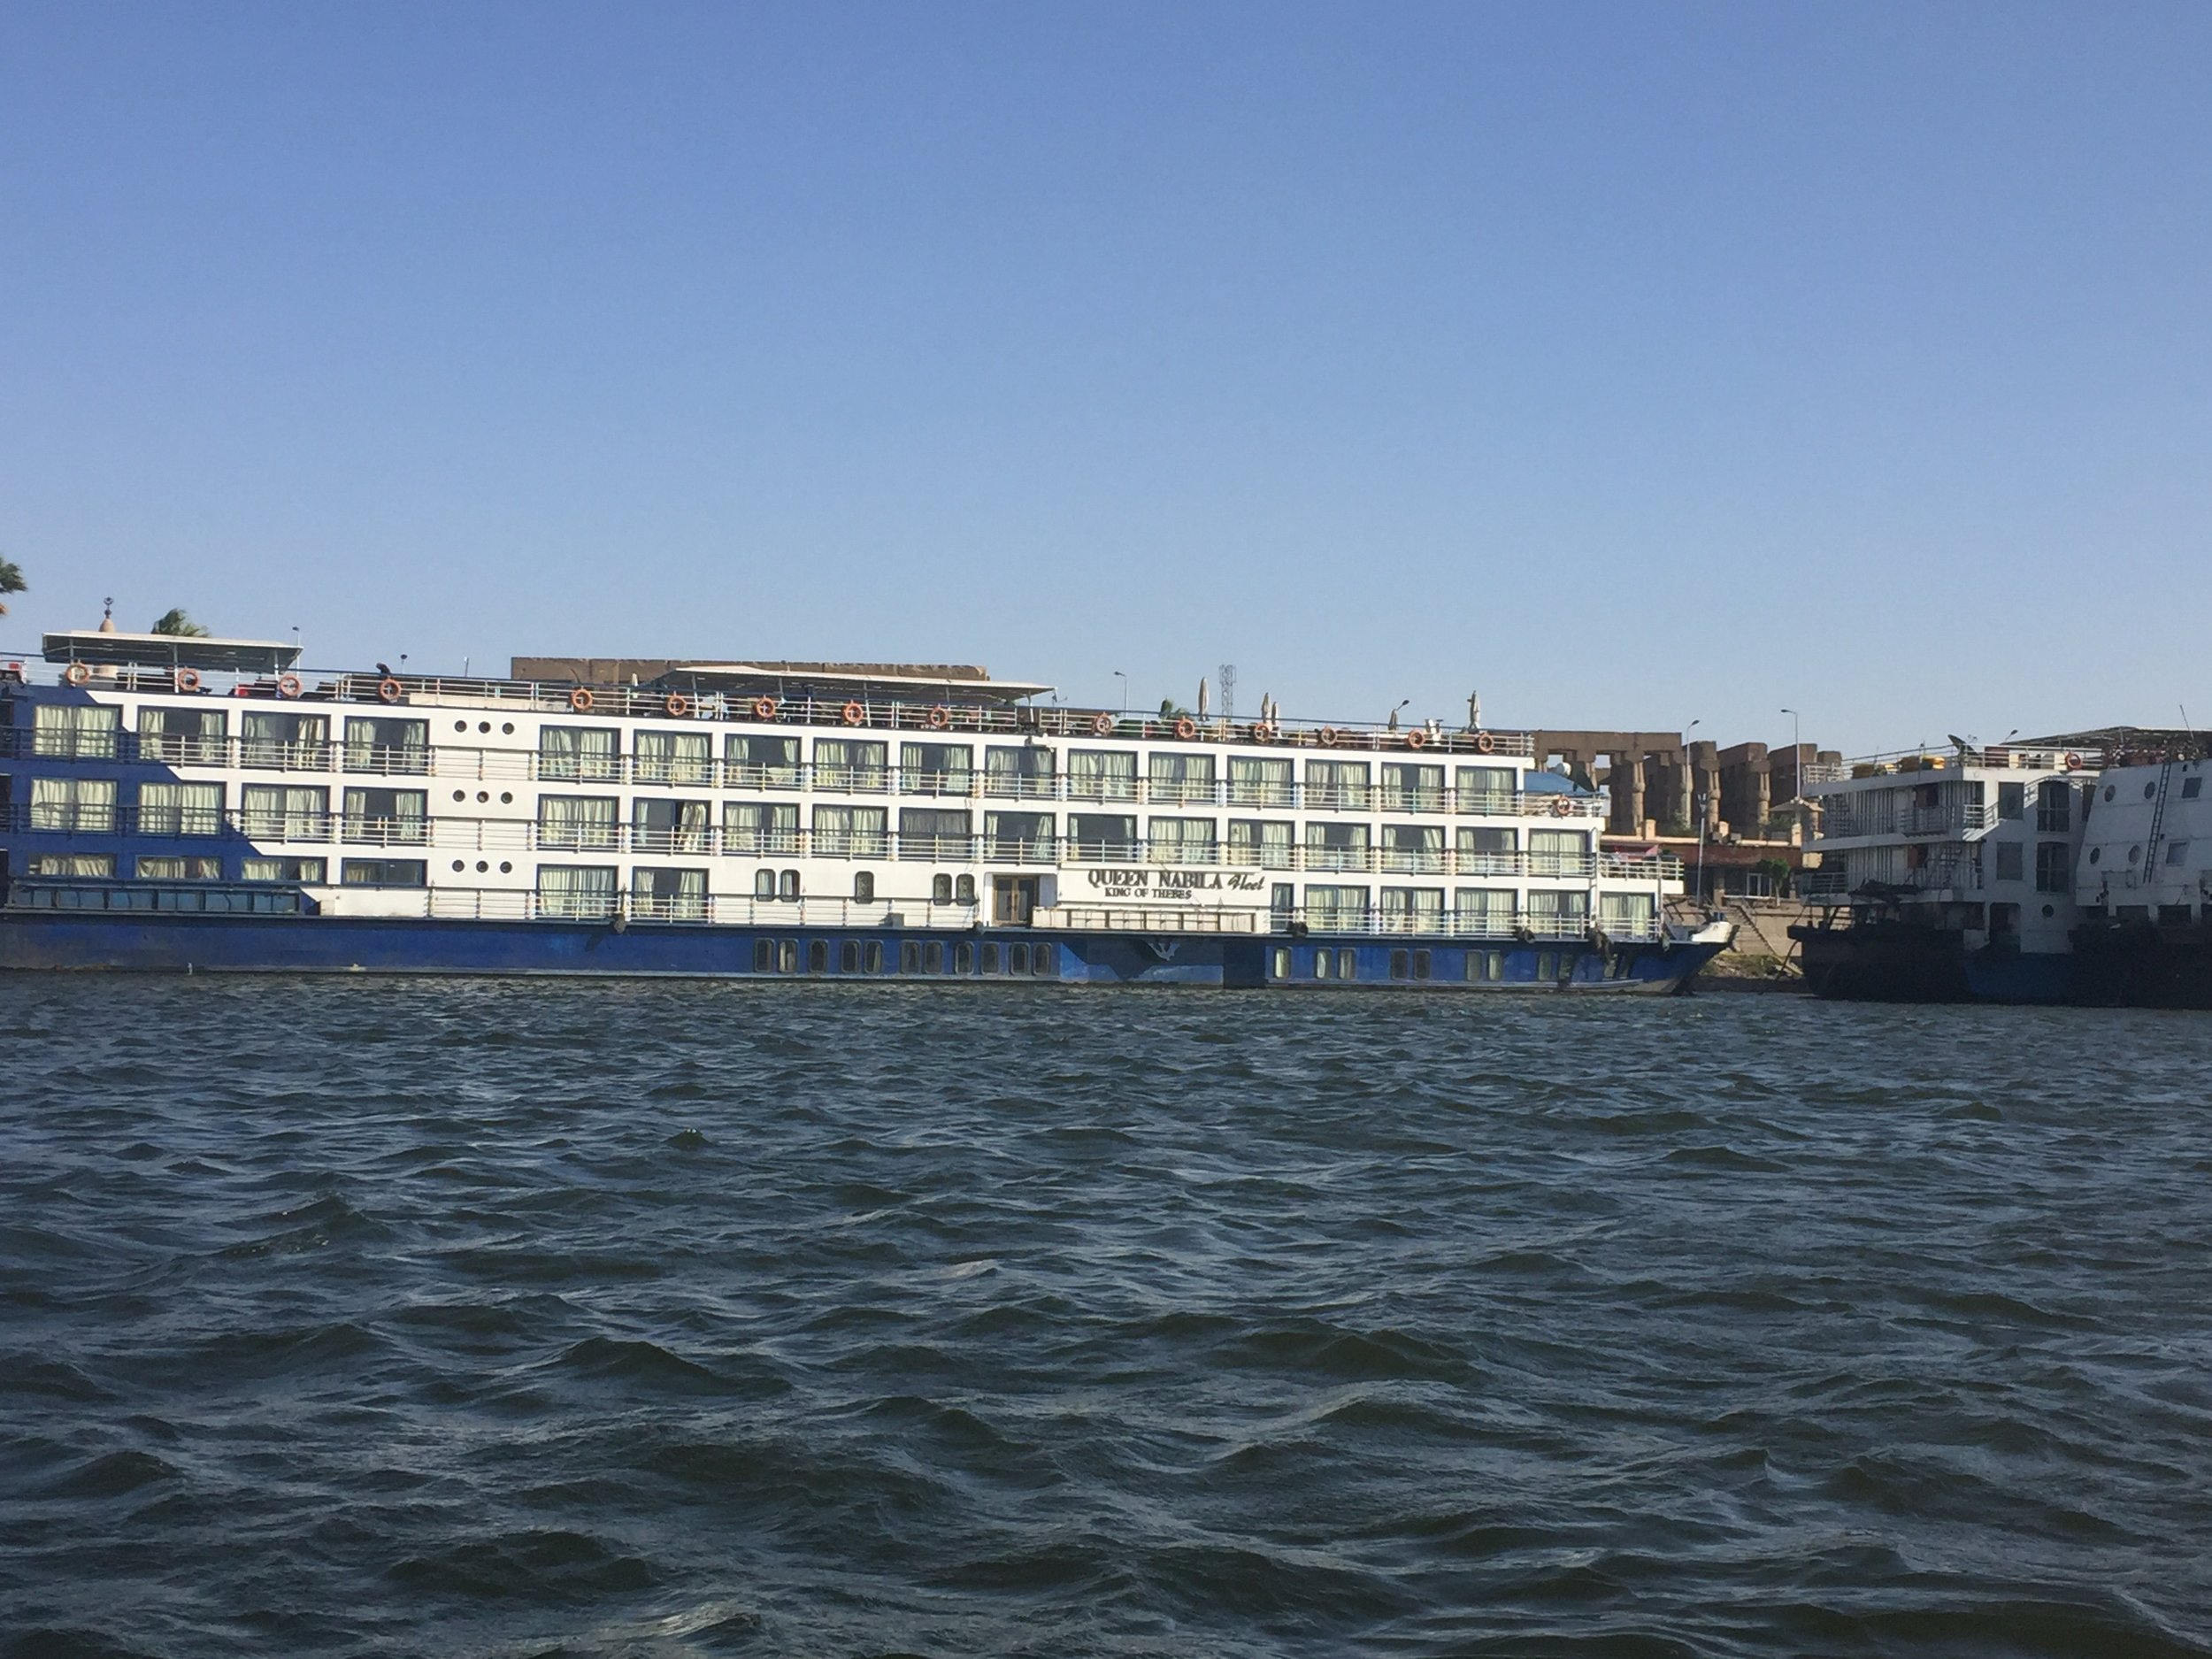 The river cruise ship